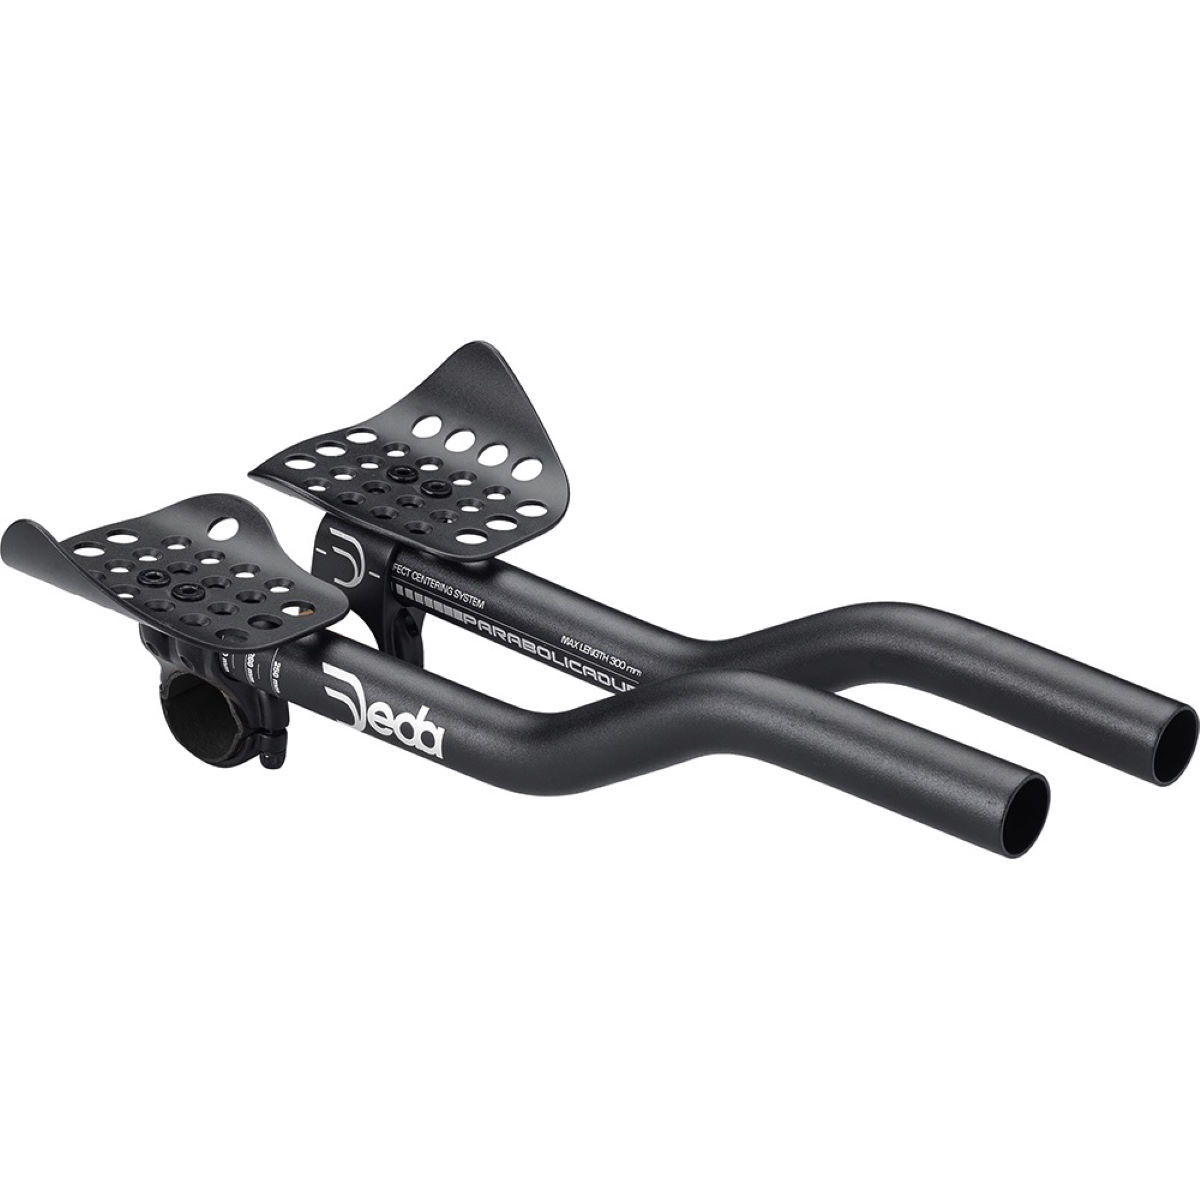 Deda Deda Parabolica Due  Clip-On Bars   Aero Bars